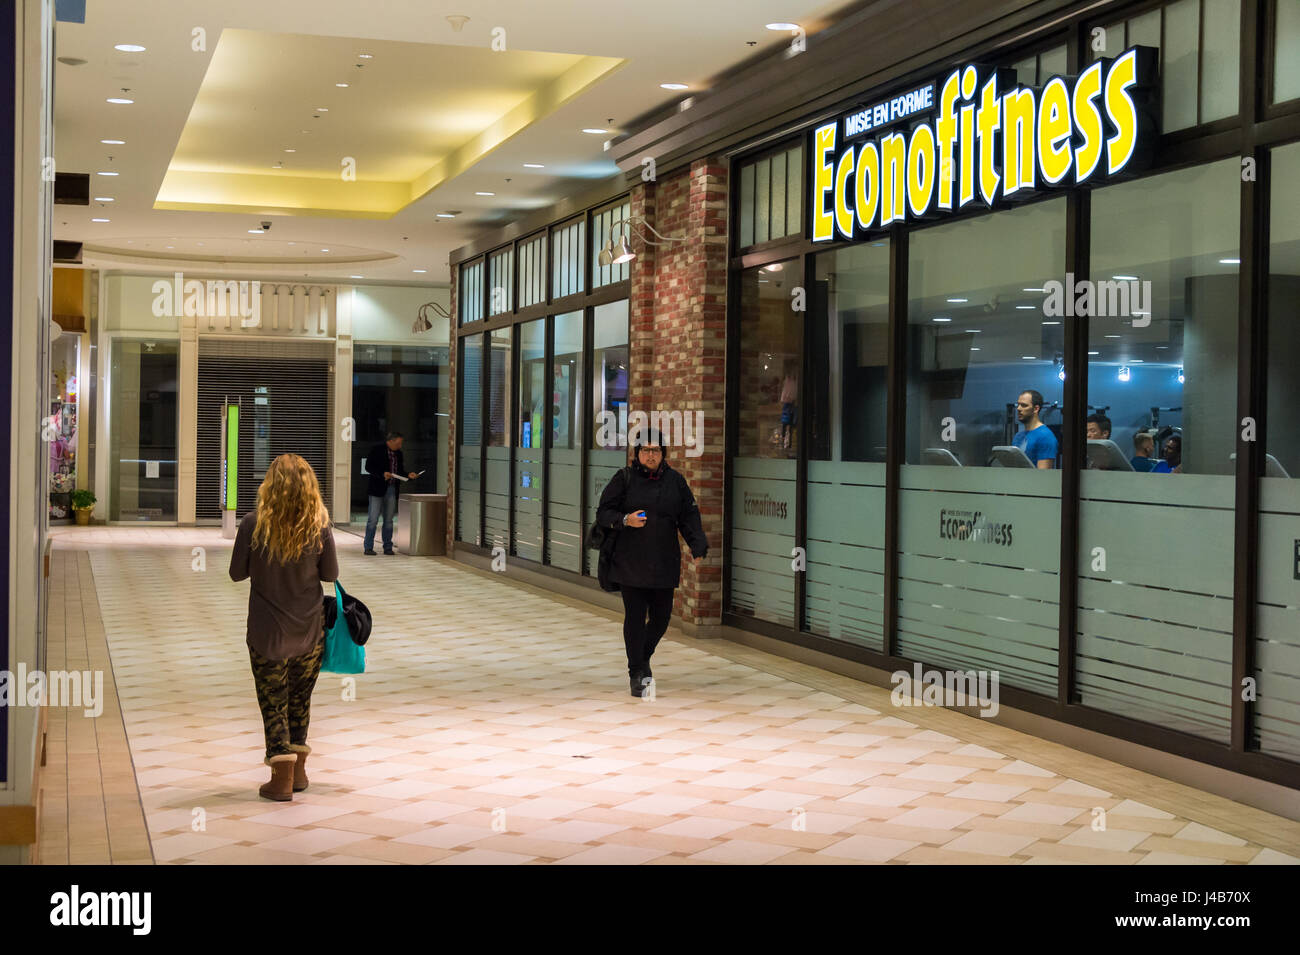 Low-cost gym Econofitness Promenades Cathedrale in Montreal Stock Photo